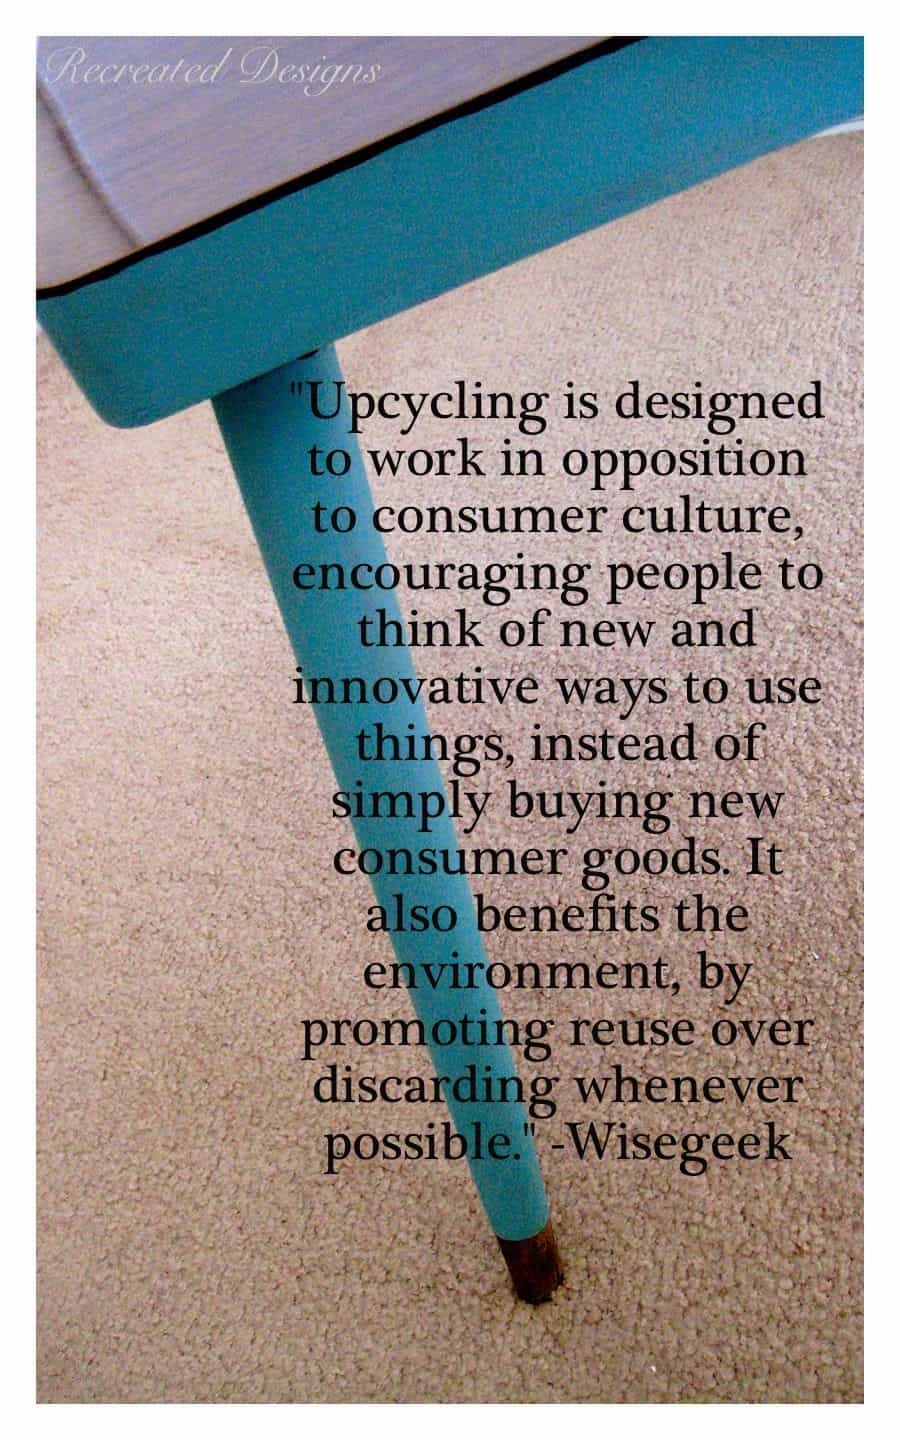 a quote about upcycling